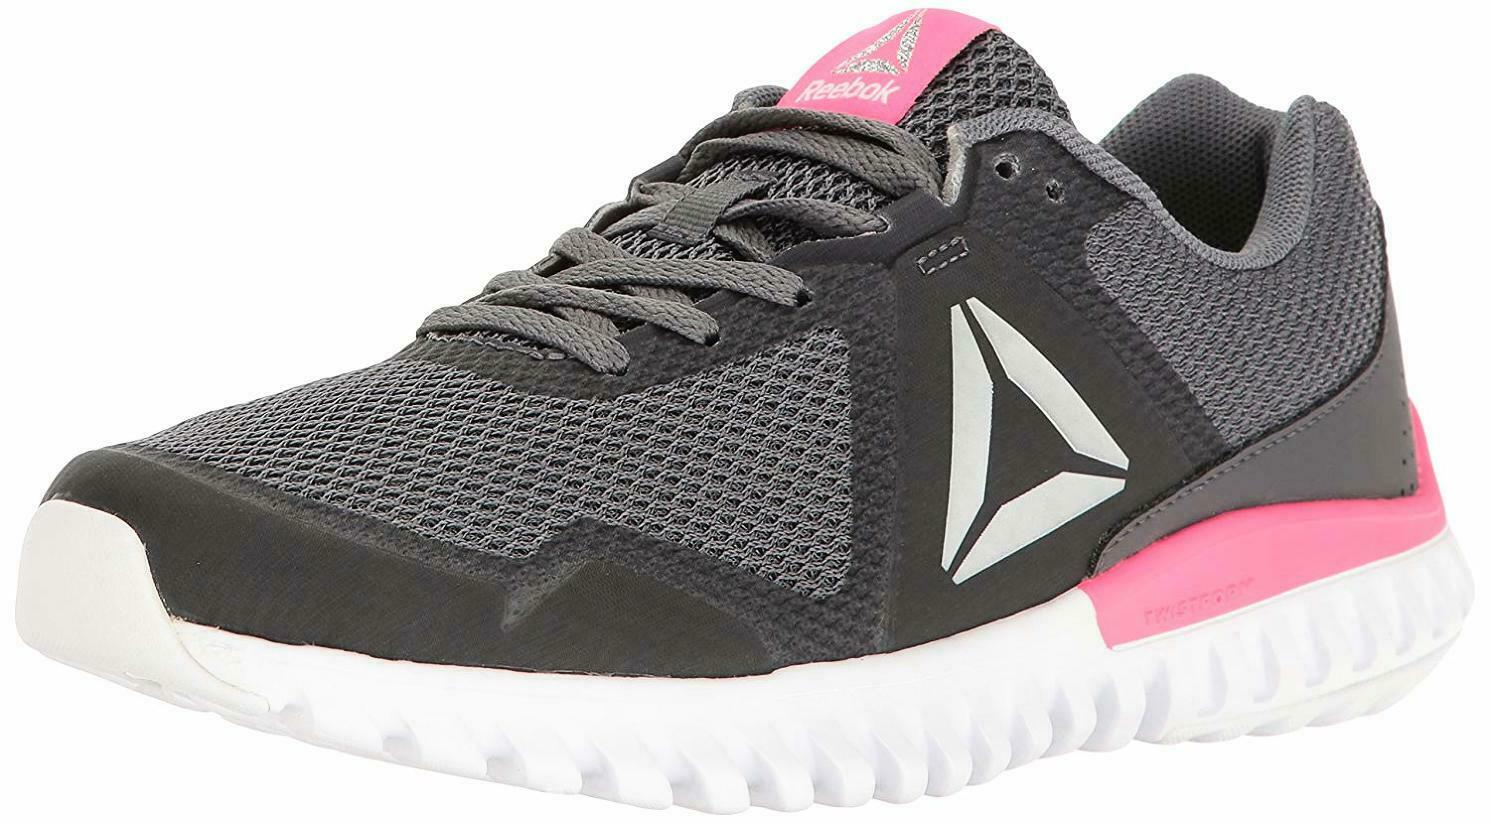 Reebok Women's Twistform Blaze 3.0 Mtm Running shoes - Choose SZ color